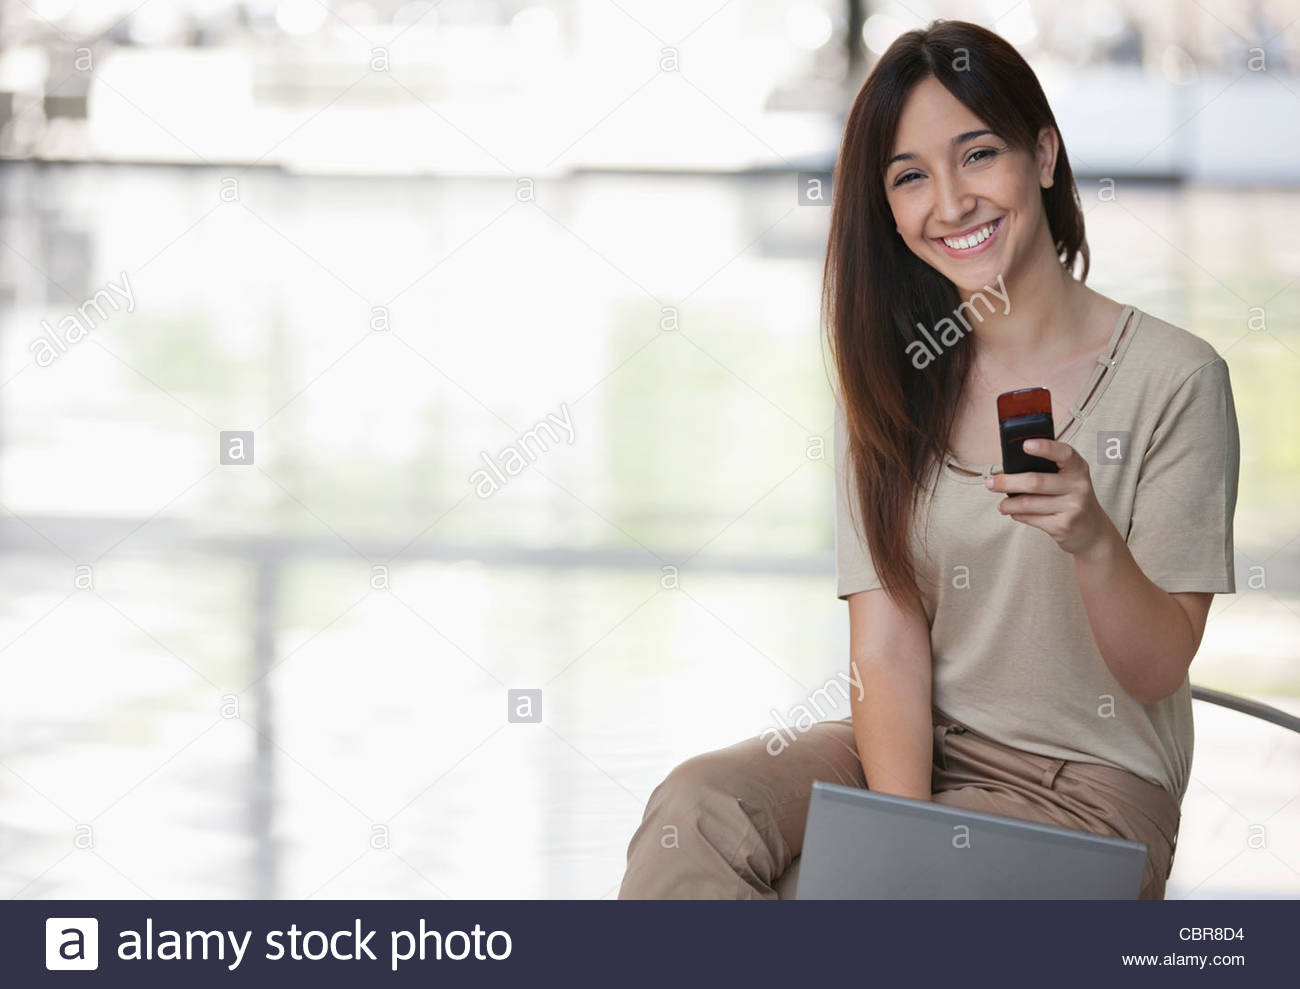 Businesswoman text messaging on cell phone in lobby - Stock Image